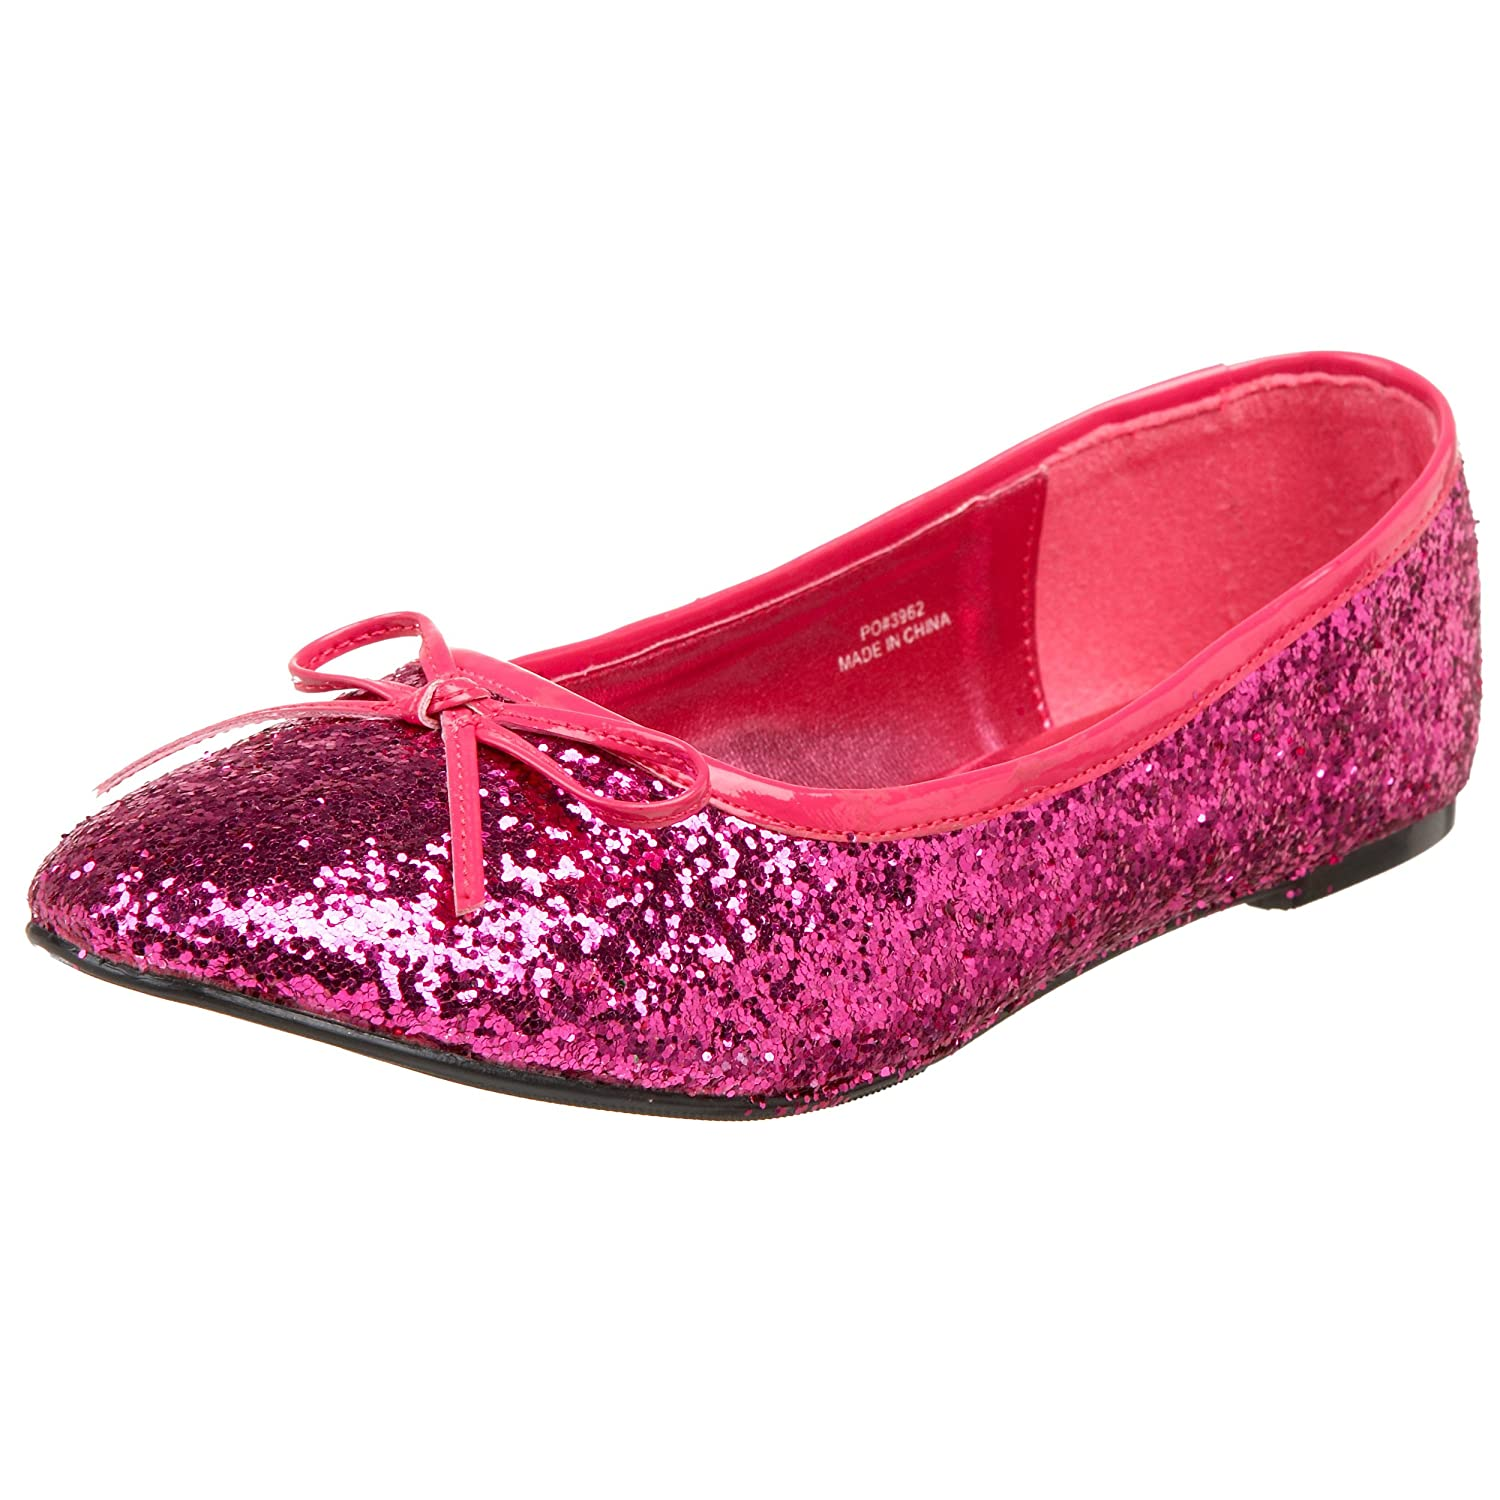 Funtasma by Pleaser Women's Star-16G Flat B002HIYFSG 6 B(M) US|Hot Pink Glitter